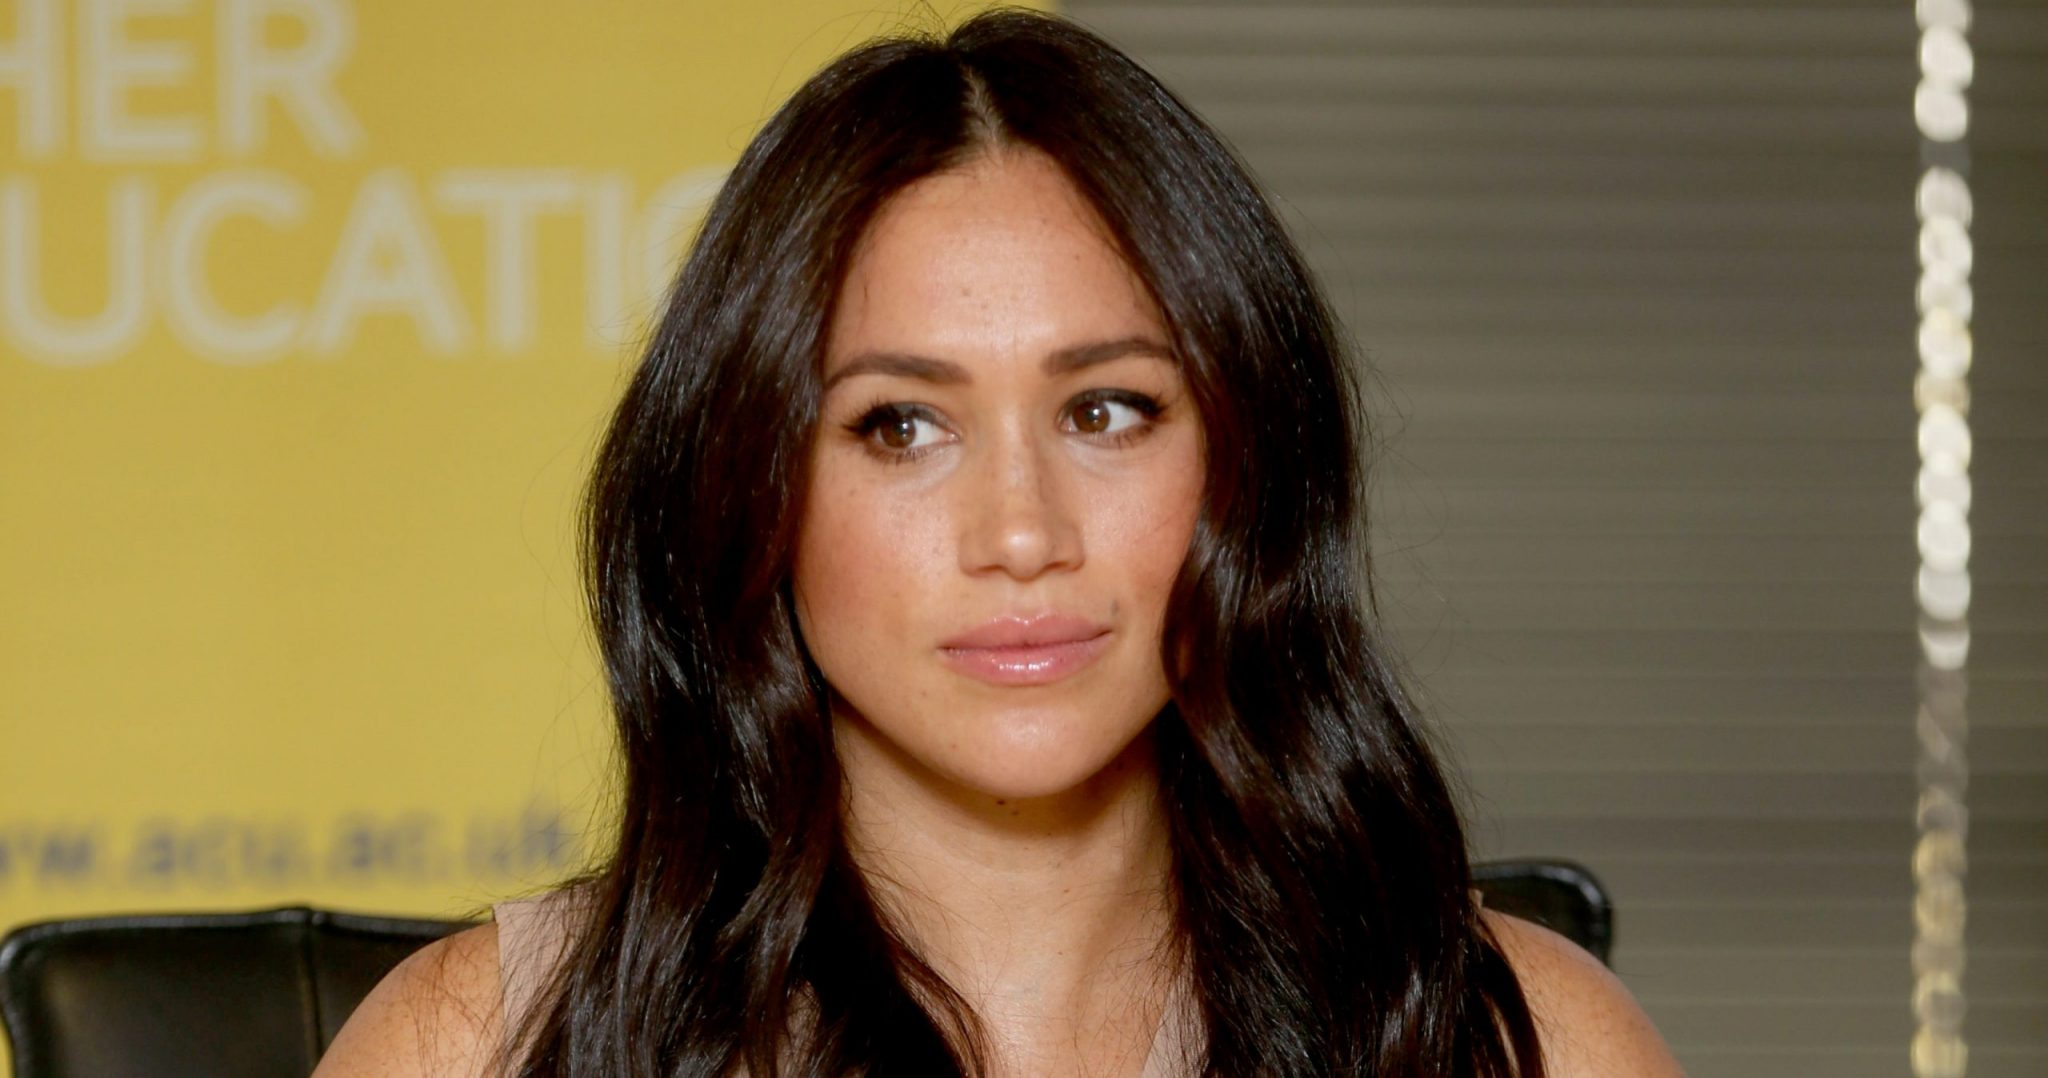 https://celebritycontent.com/2020/03/02/meghan-trying-to-land-a-role-as-a-hollywood-superhero-in-blockbuster-film-entertainment-daily/